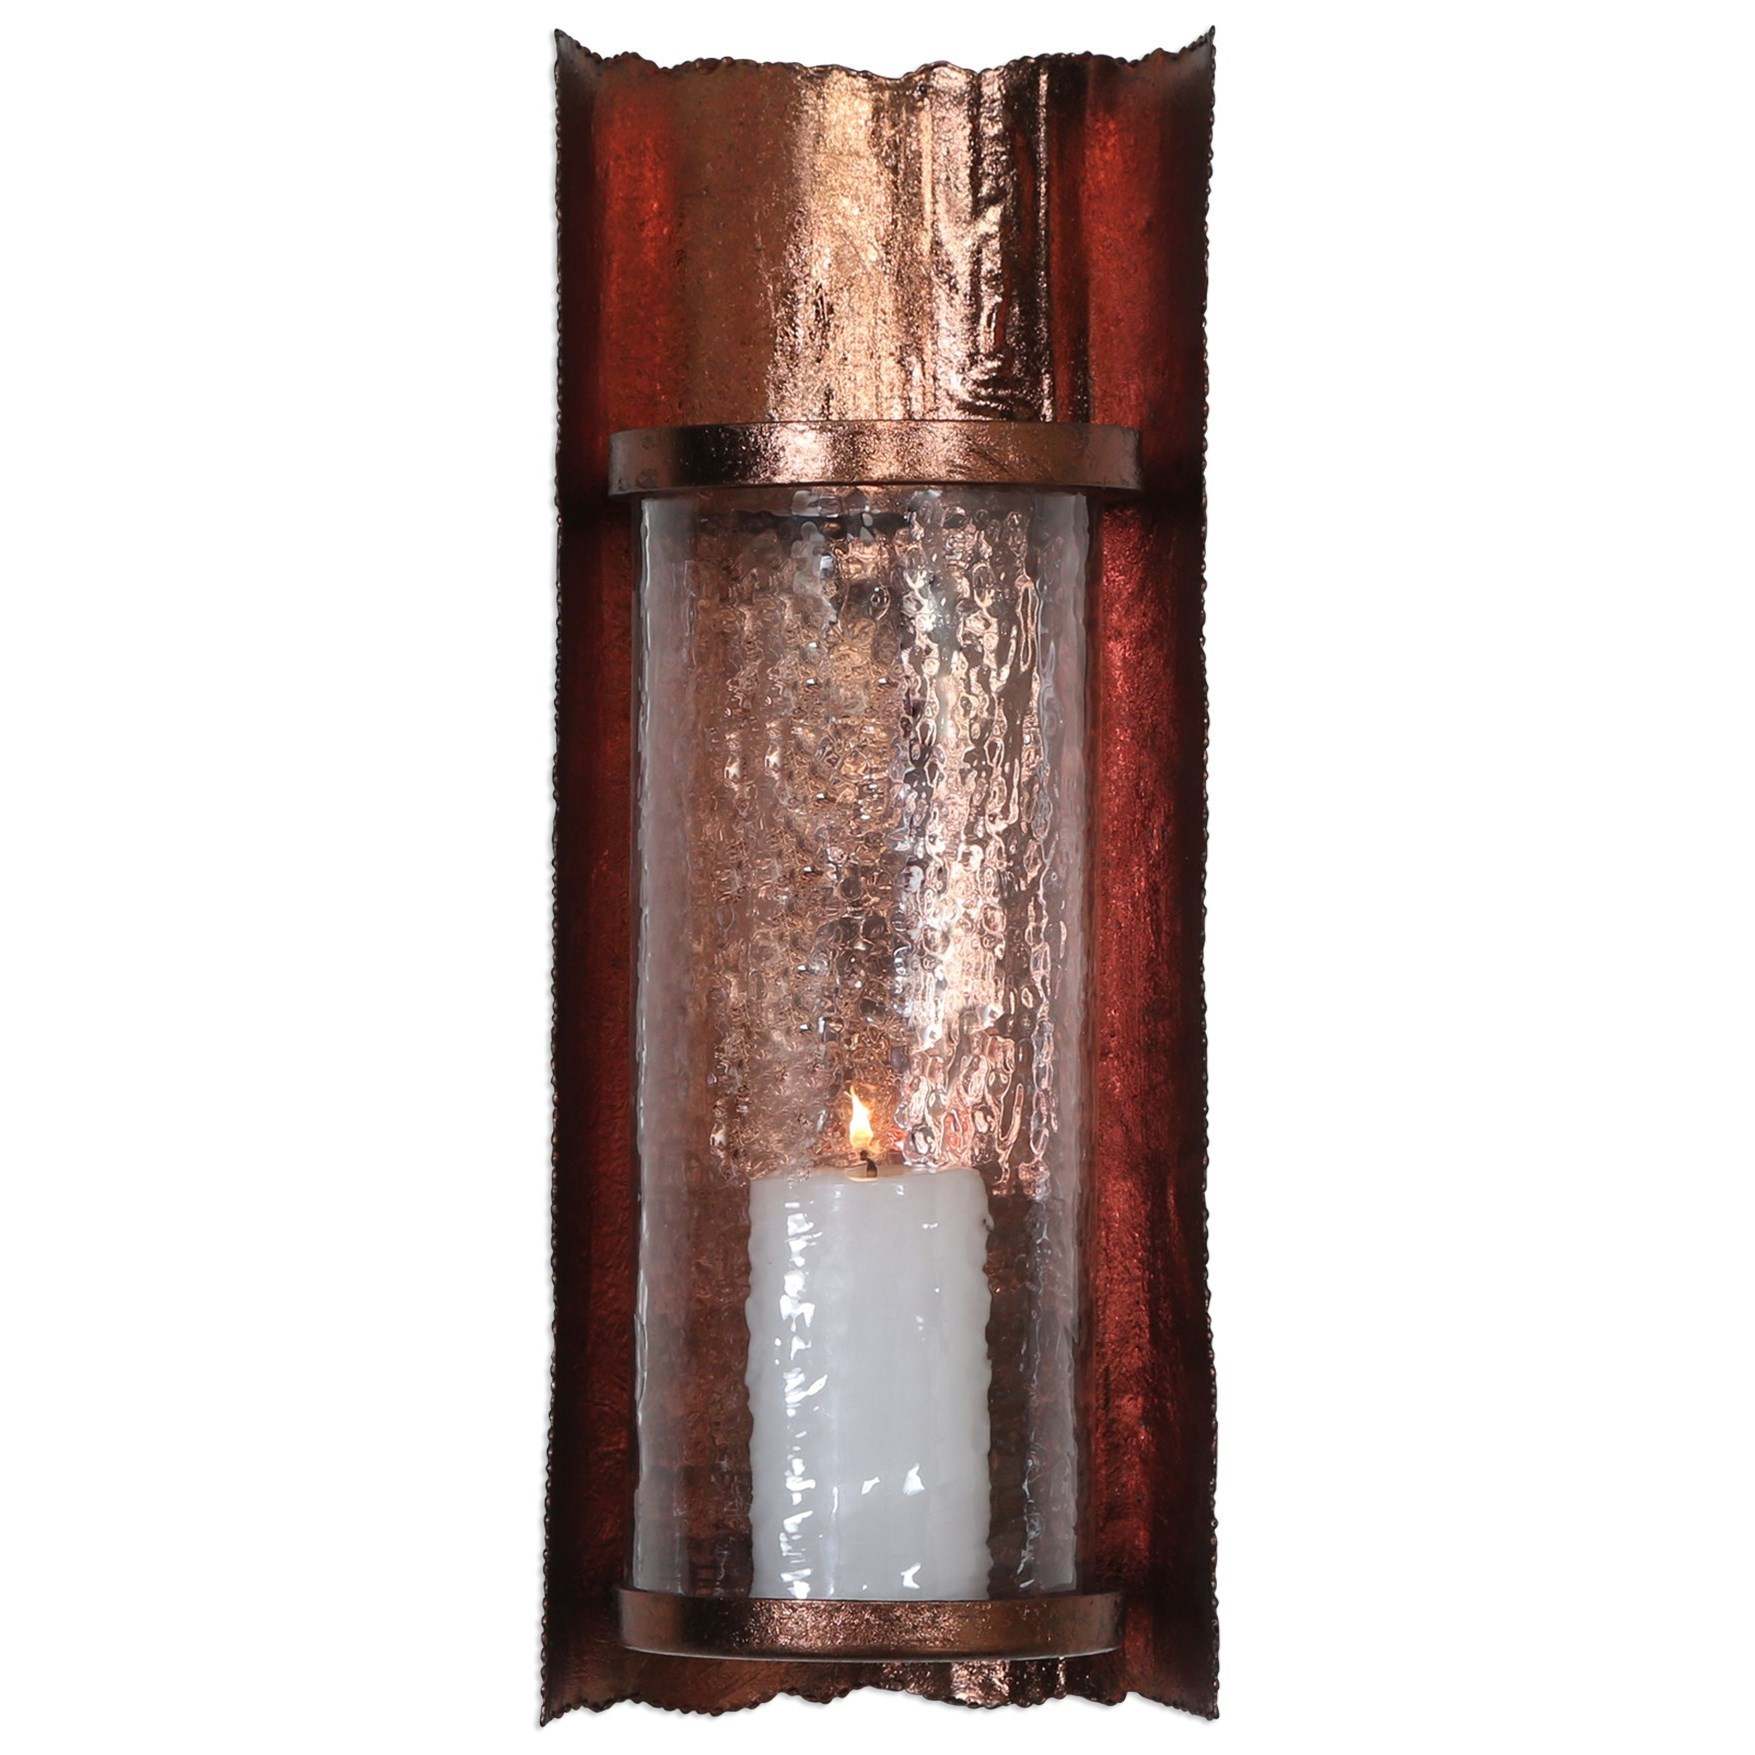 Uttermost Accessories Goffredo Candle Wall Sconce - Item Number: 20049